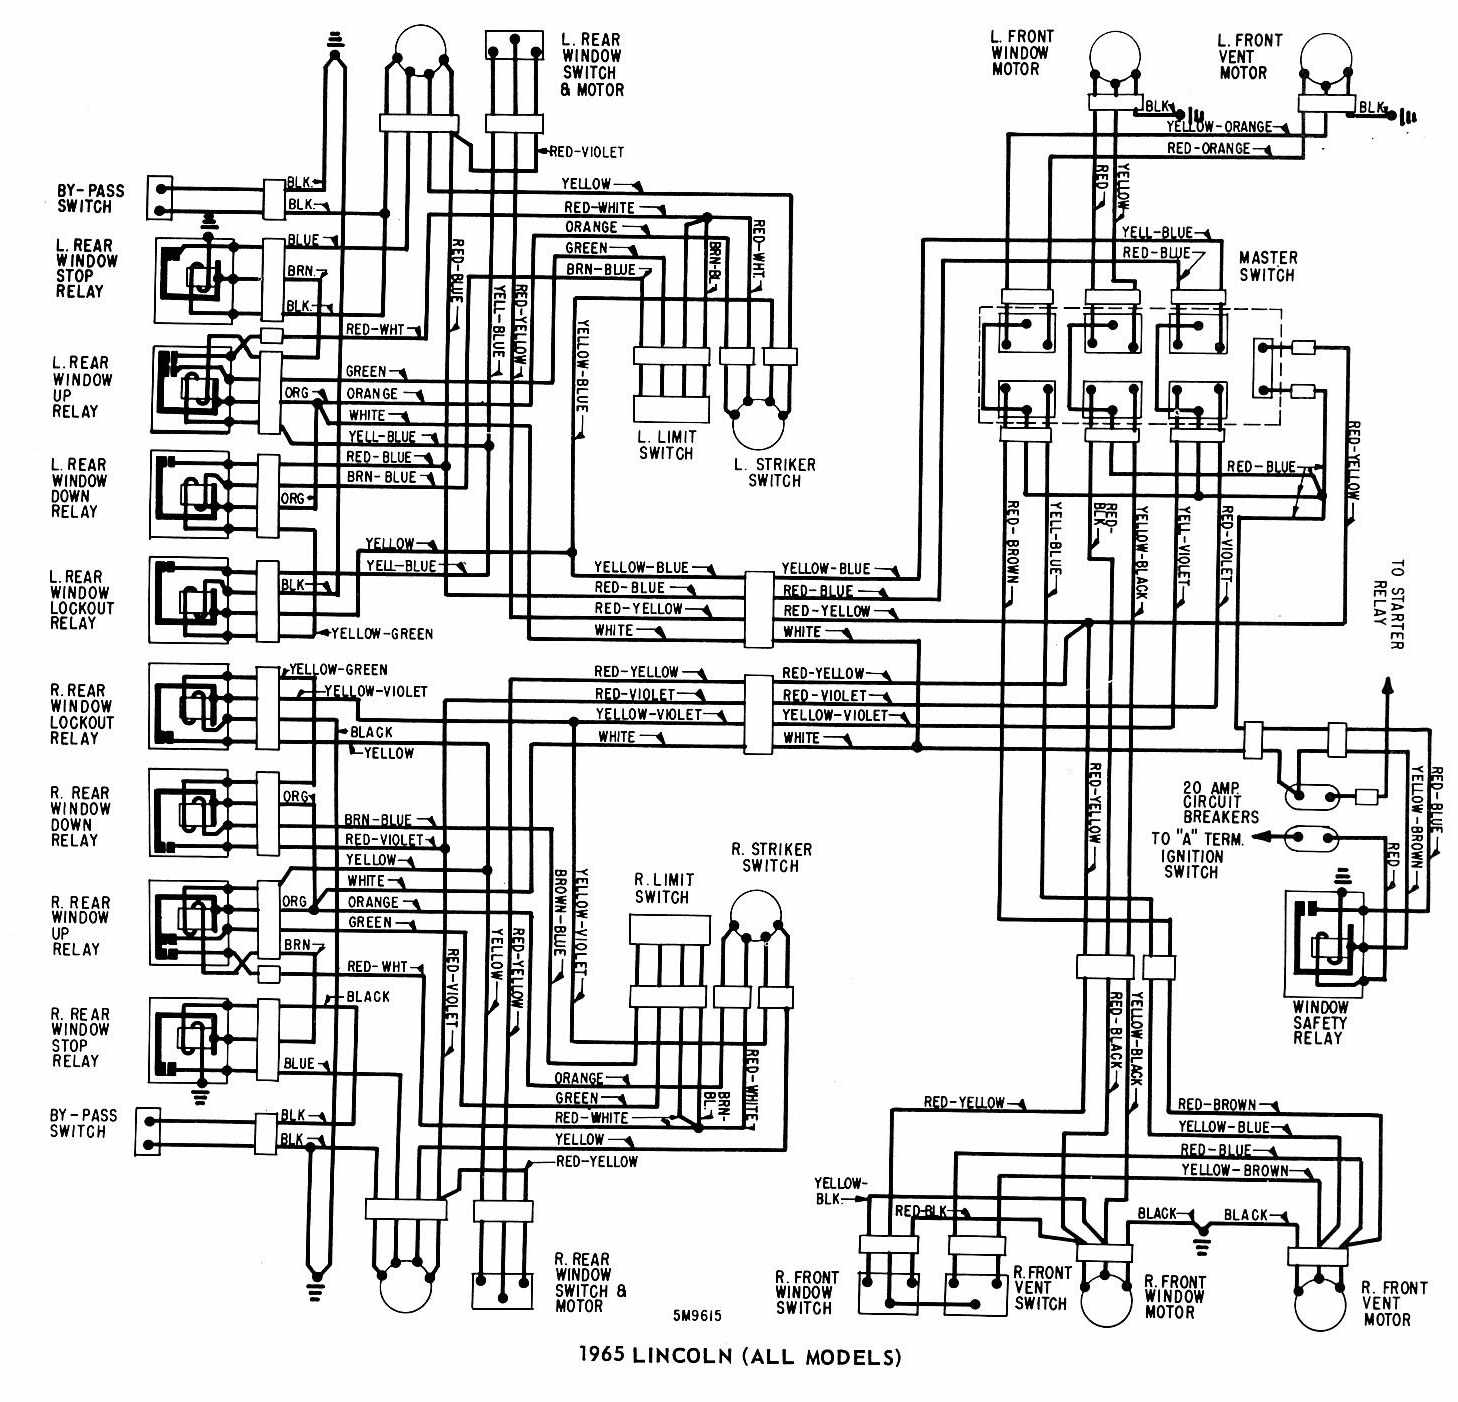 1969 Lincoln Wiring Diagram The Portal And Forum Of Ford Mustang Power Window Schematic Third Level Rh 10 2 11 Jacobwinterstein Com 1966 Thunderbird Mark Iii